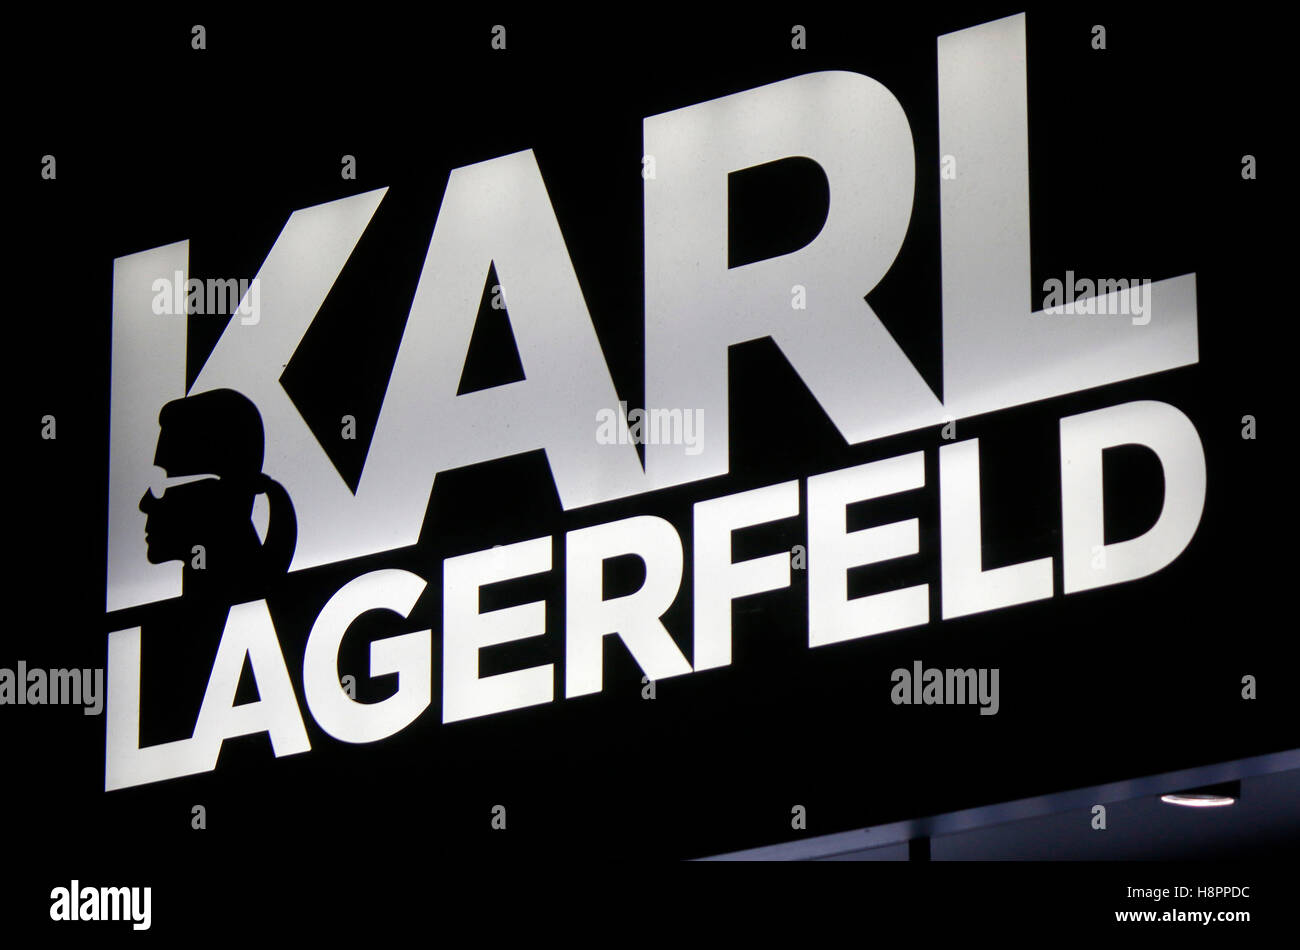 Karl Lagerfeld Logo Stock Photos Karl Lagerfeld Logo Stock Images